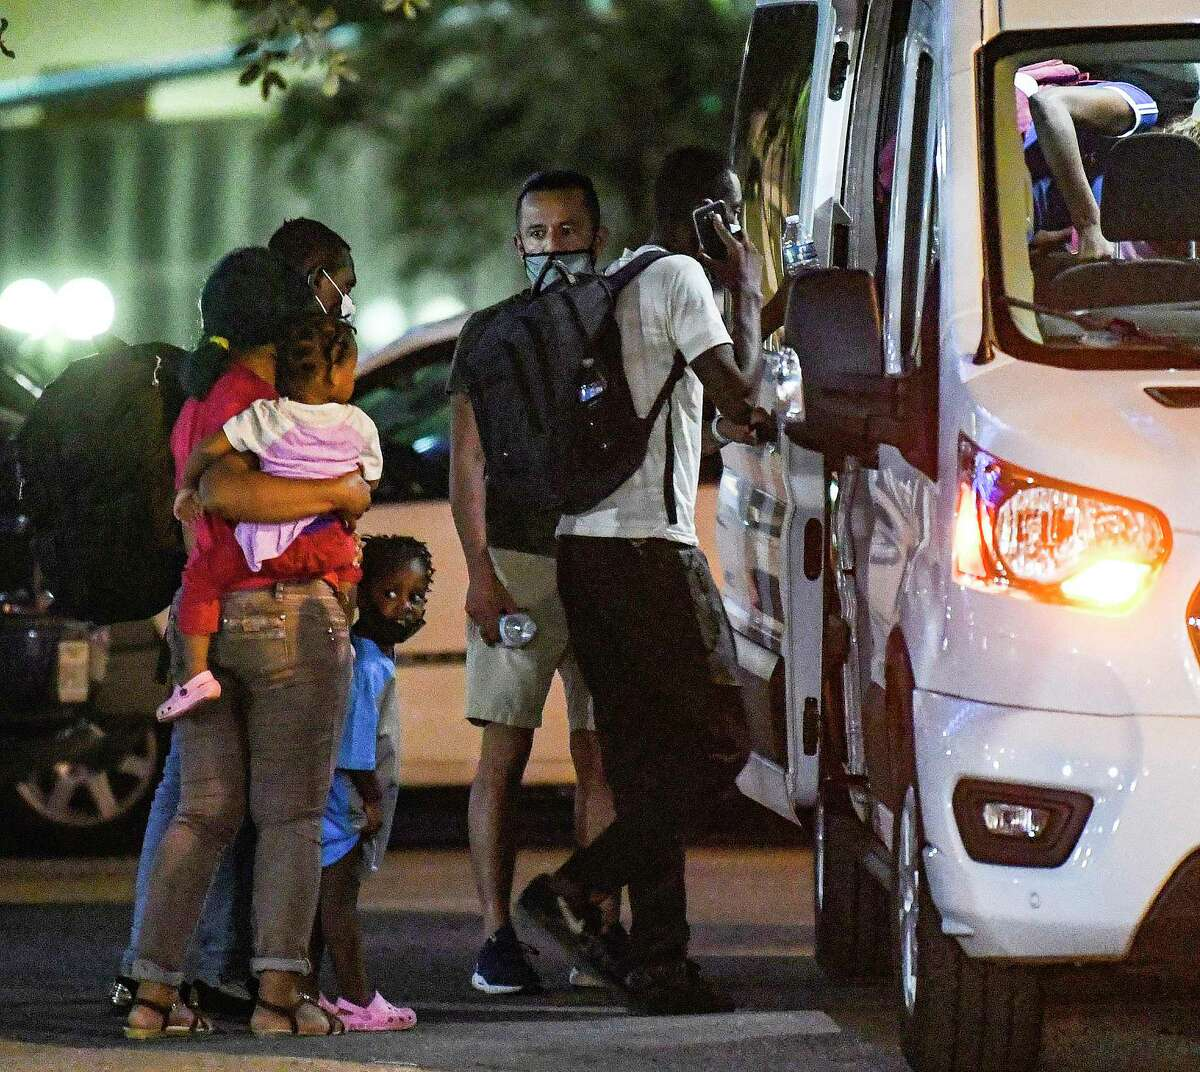 Migrants arrive at the downtown San Antonio bus station on Monday evening, Sept. 20, 2021. Some said that they were from Haiti and did not know where they were going.